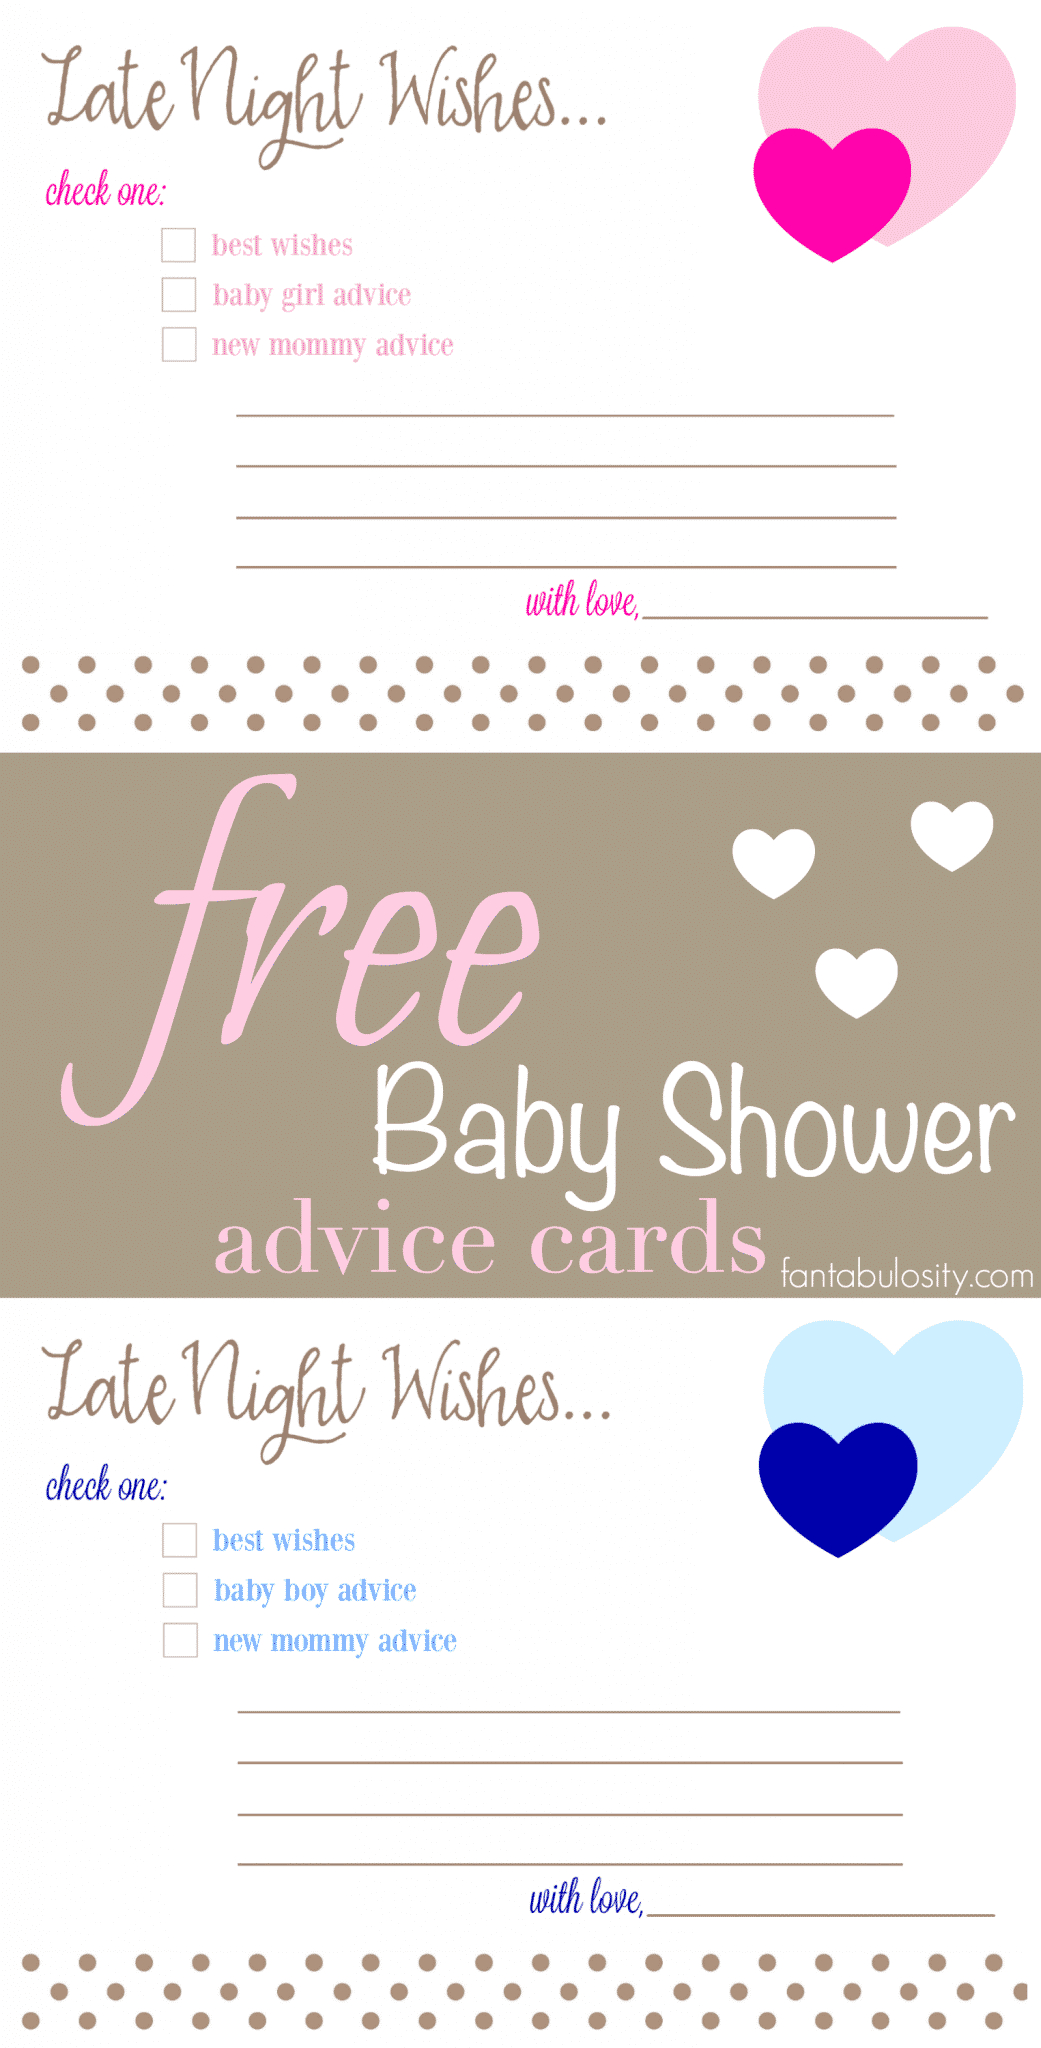 Free Printable Baby Shower Advice & Best Wishes Cards - Fantabulosity - Free Printable Baby Shower Advice Cards